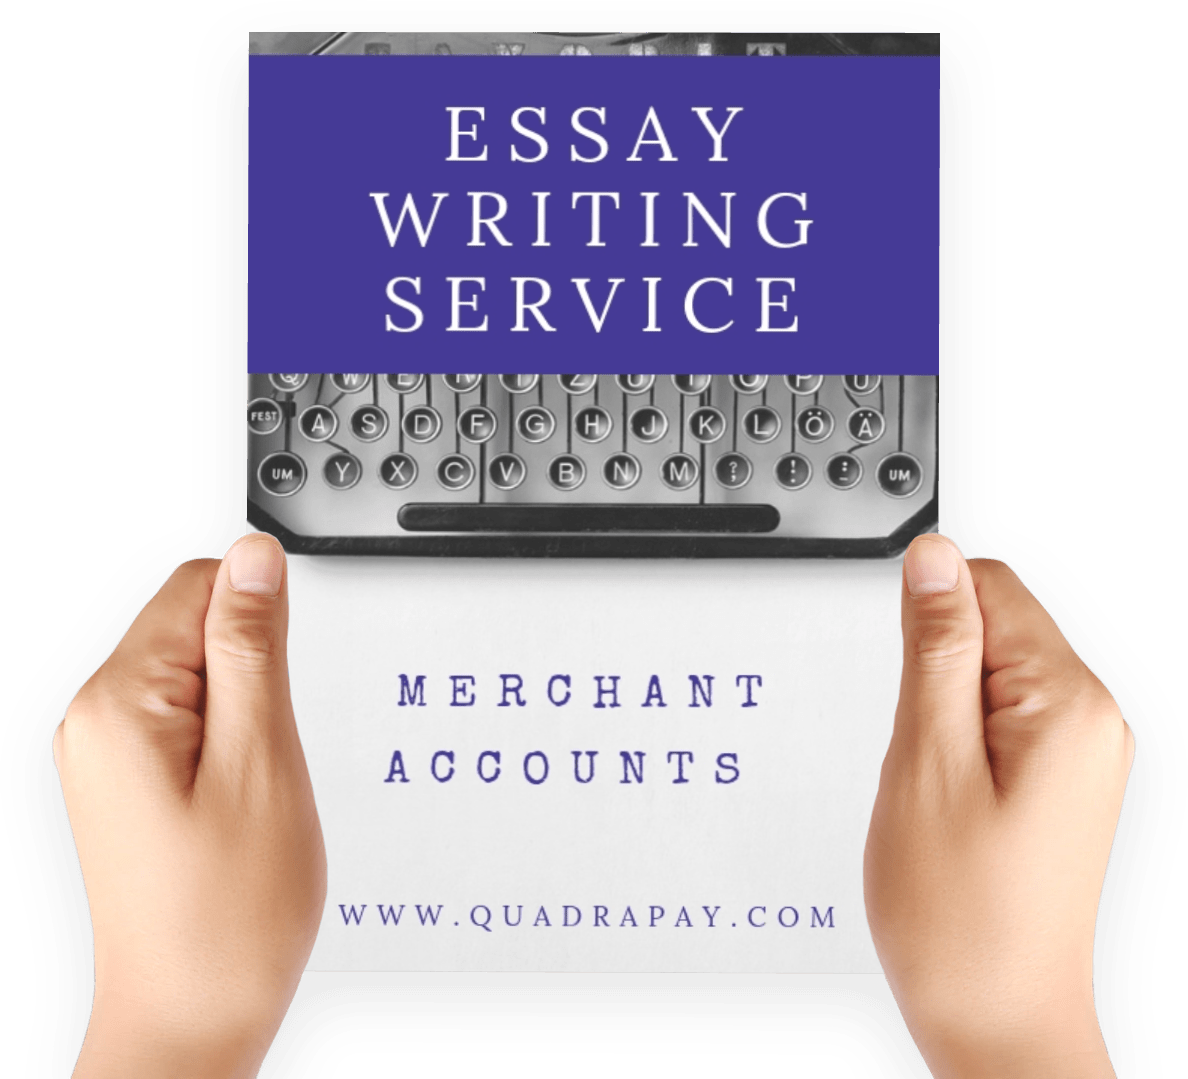 Merchant Accounts for Eassay Writing Websites By Quadrapay